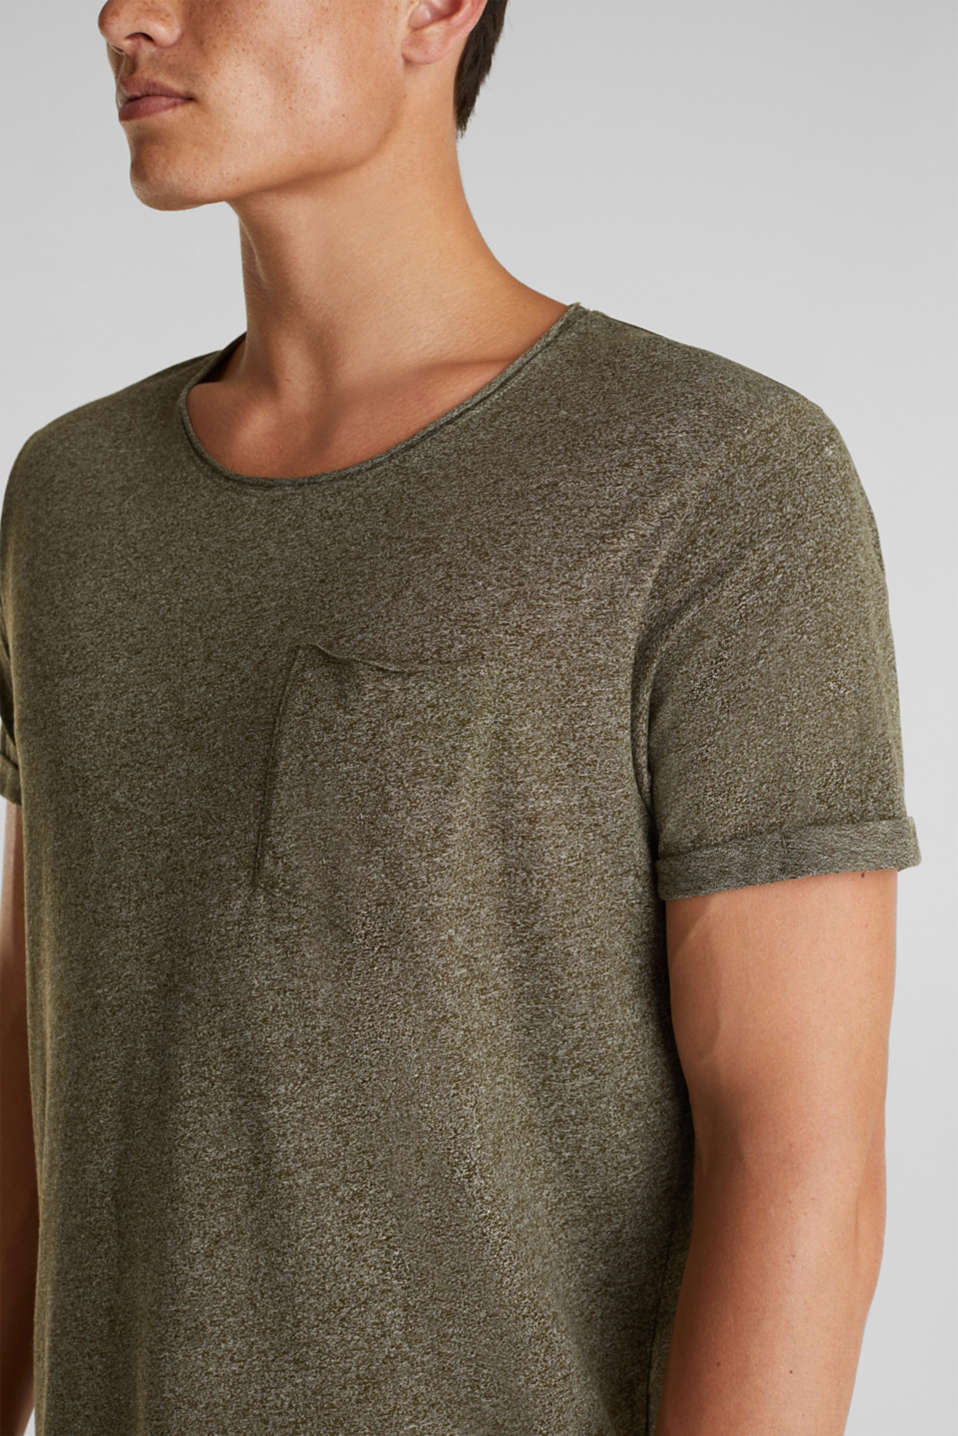 Jersey T-shirt in a casual look, OLIVE 5, detail image number 1